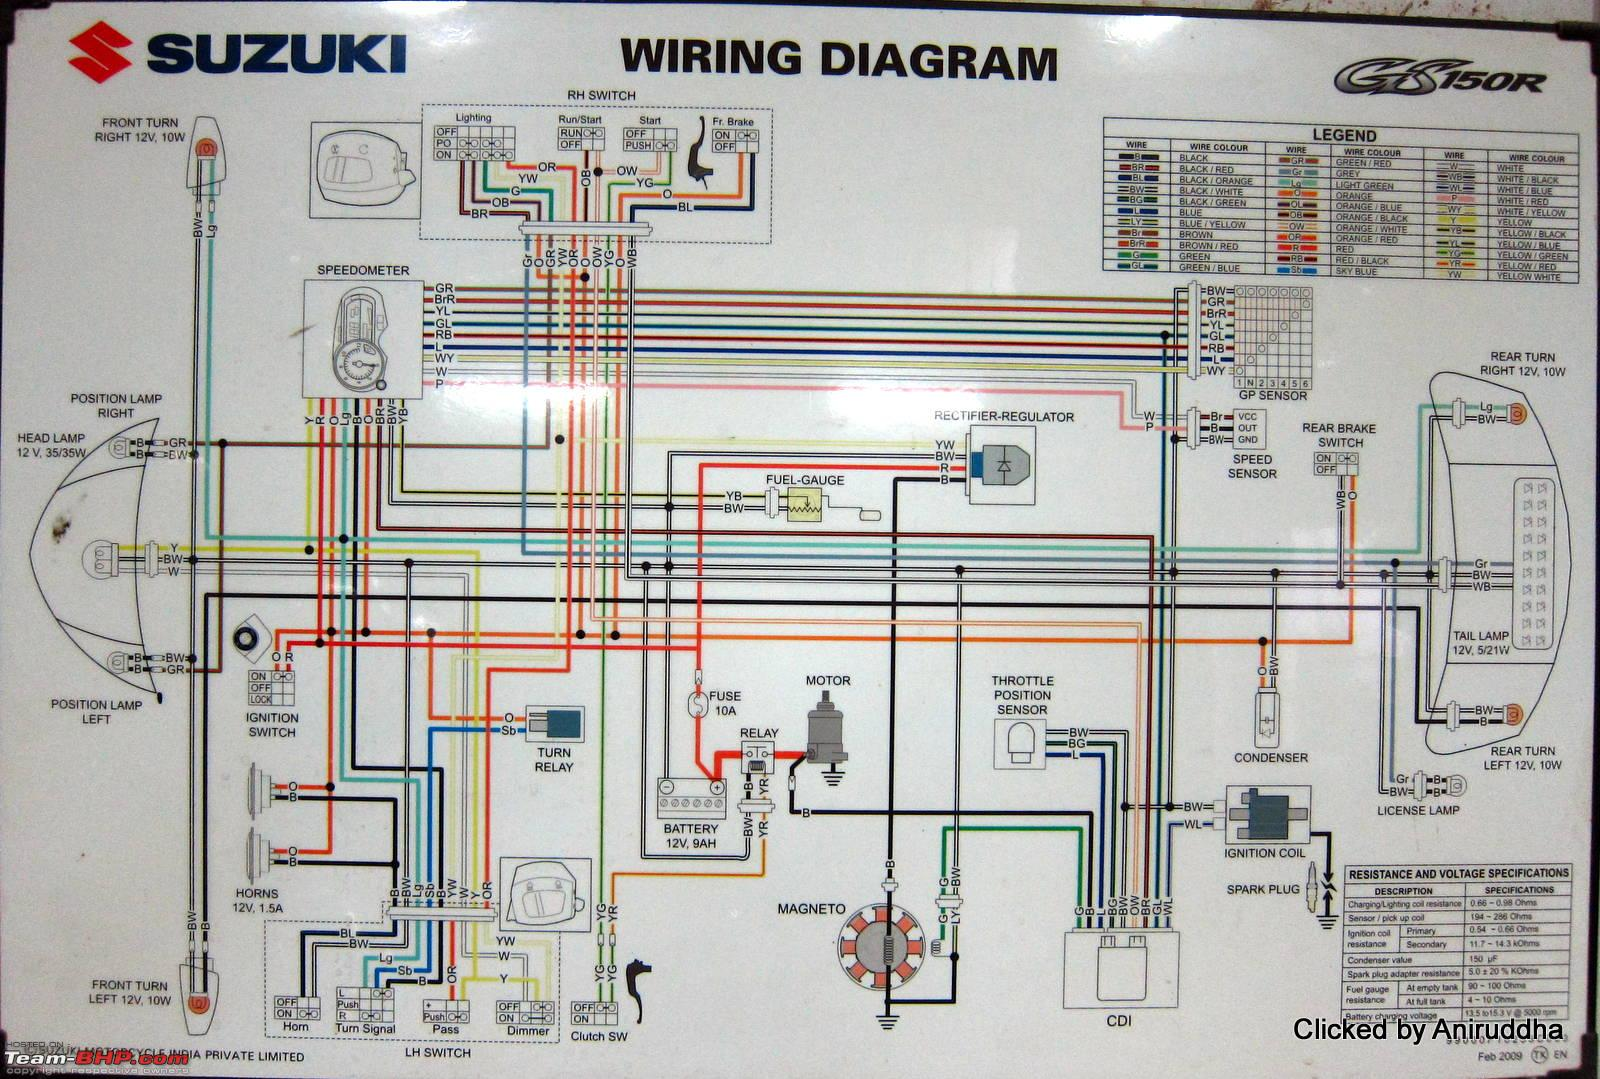 Tvs Motorcycle Wiring Diagram - 1979 Ford Wiring Harness  sonycdx.au-delice-limousin.fr | Tvs Motorcycle Wiring Diagram |  | Bege Place Wiring Diagram - Bege Wiring Diagram Full Edition